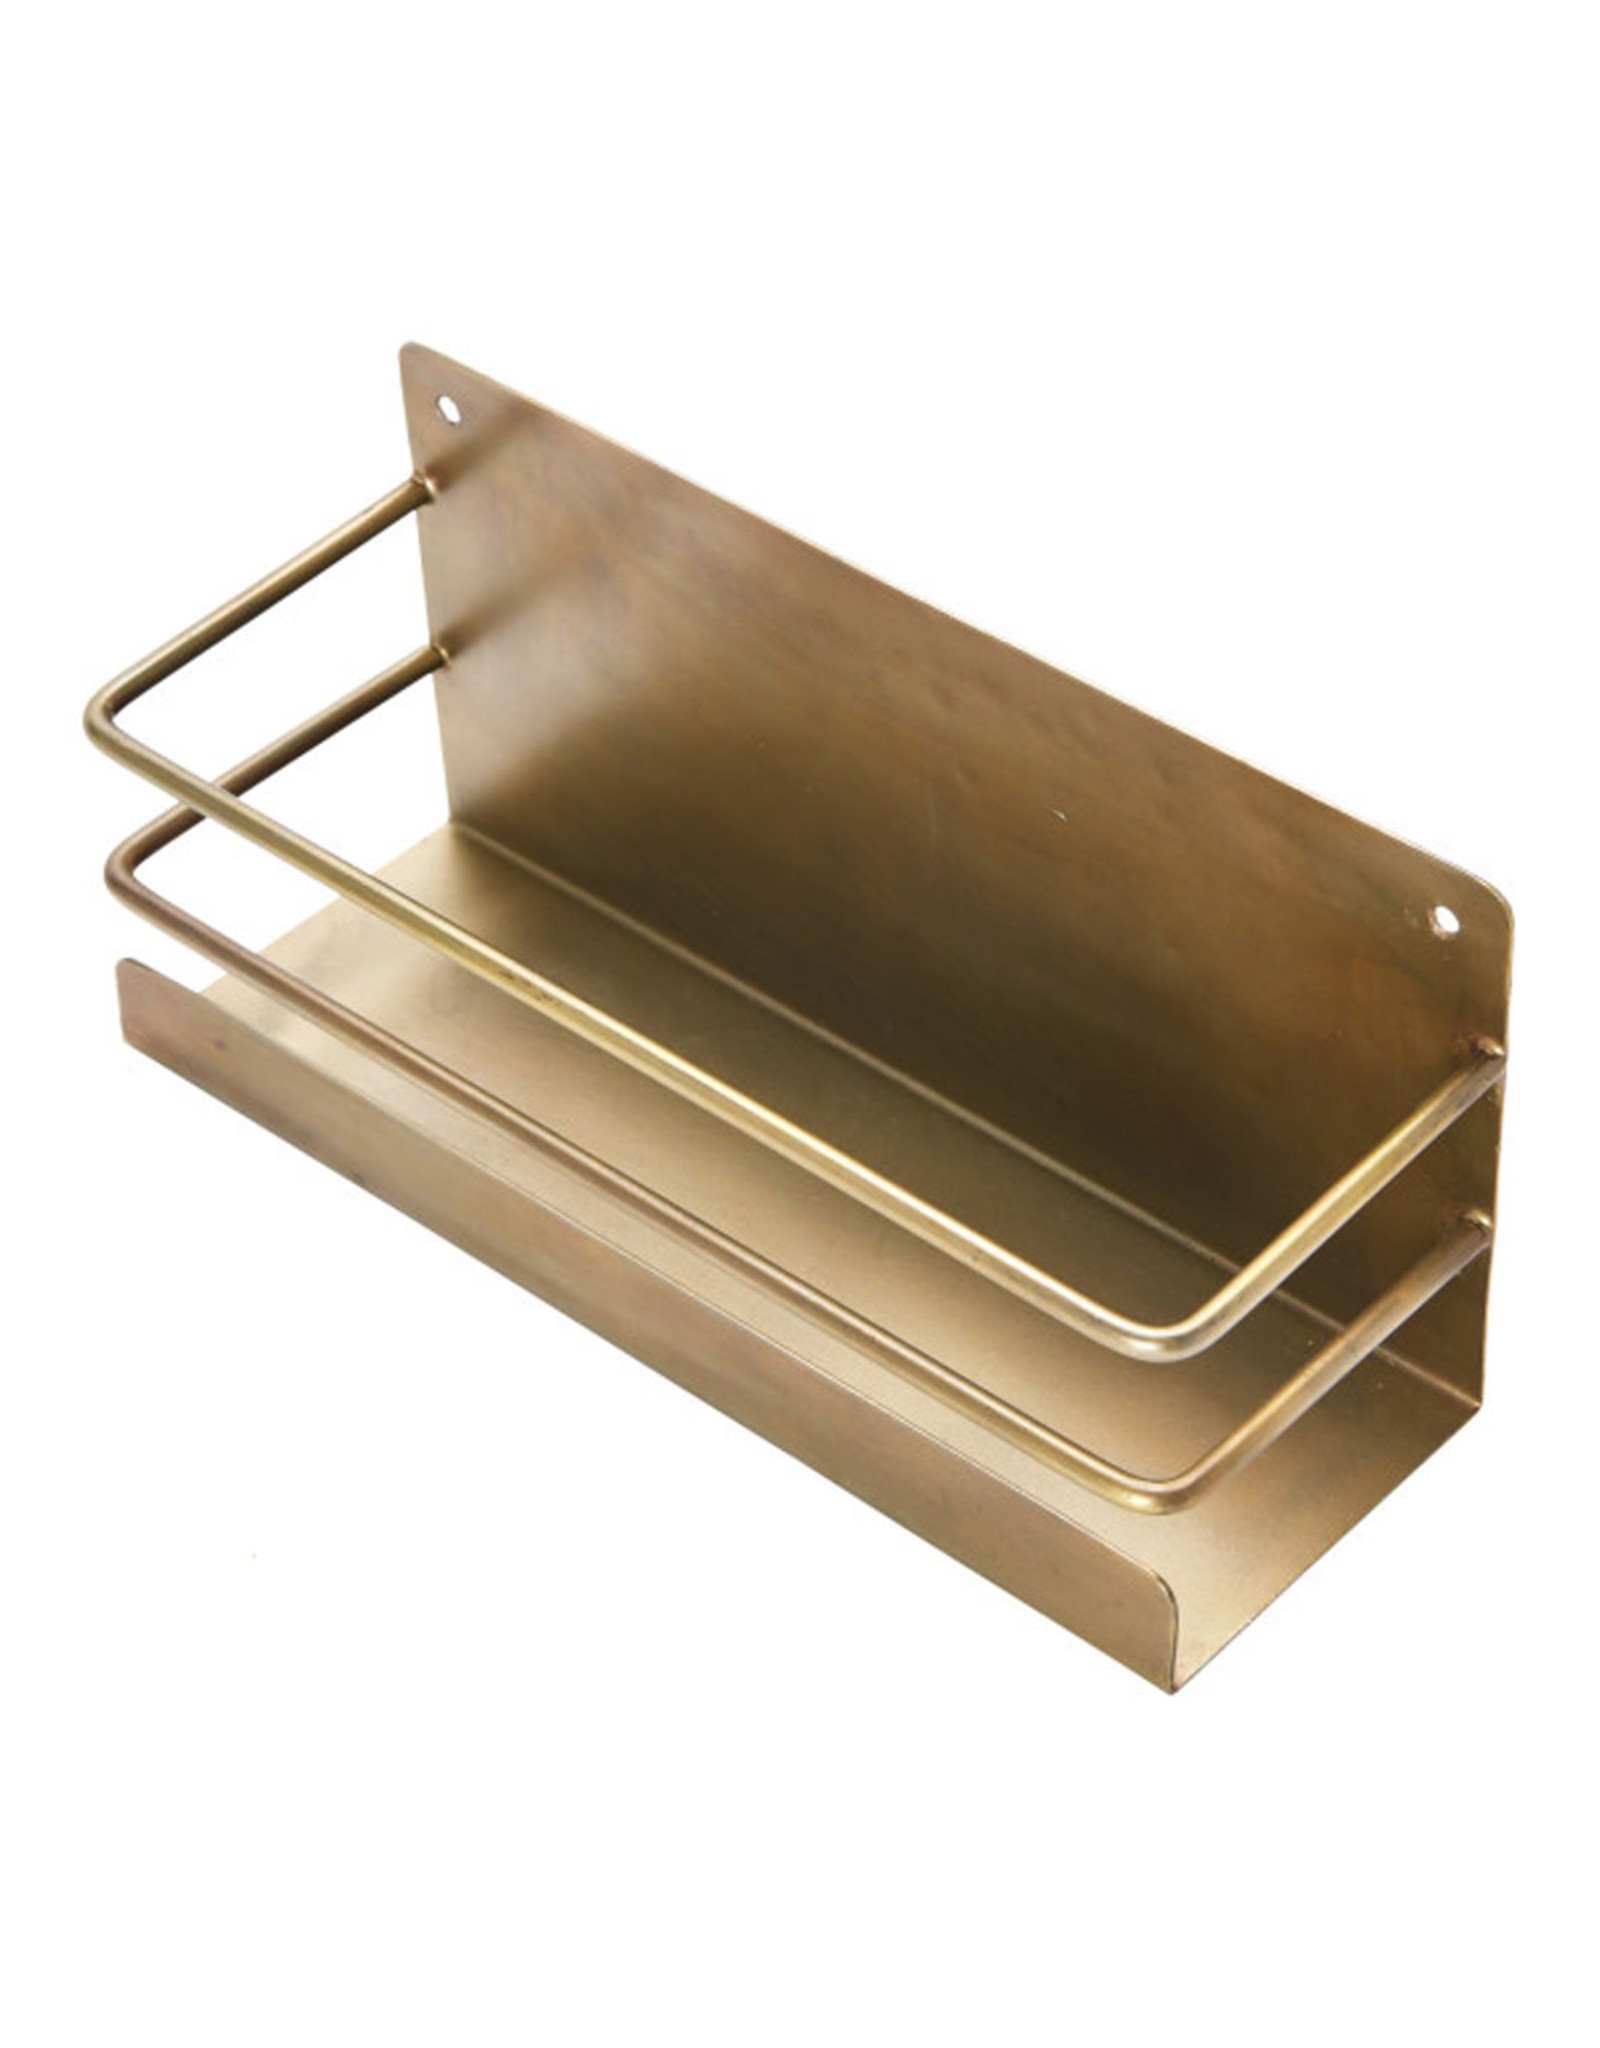 Metal Wall Rack - Antique Brass Finish